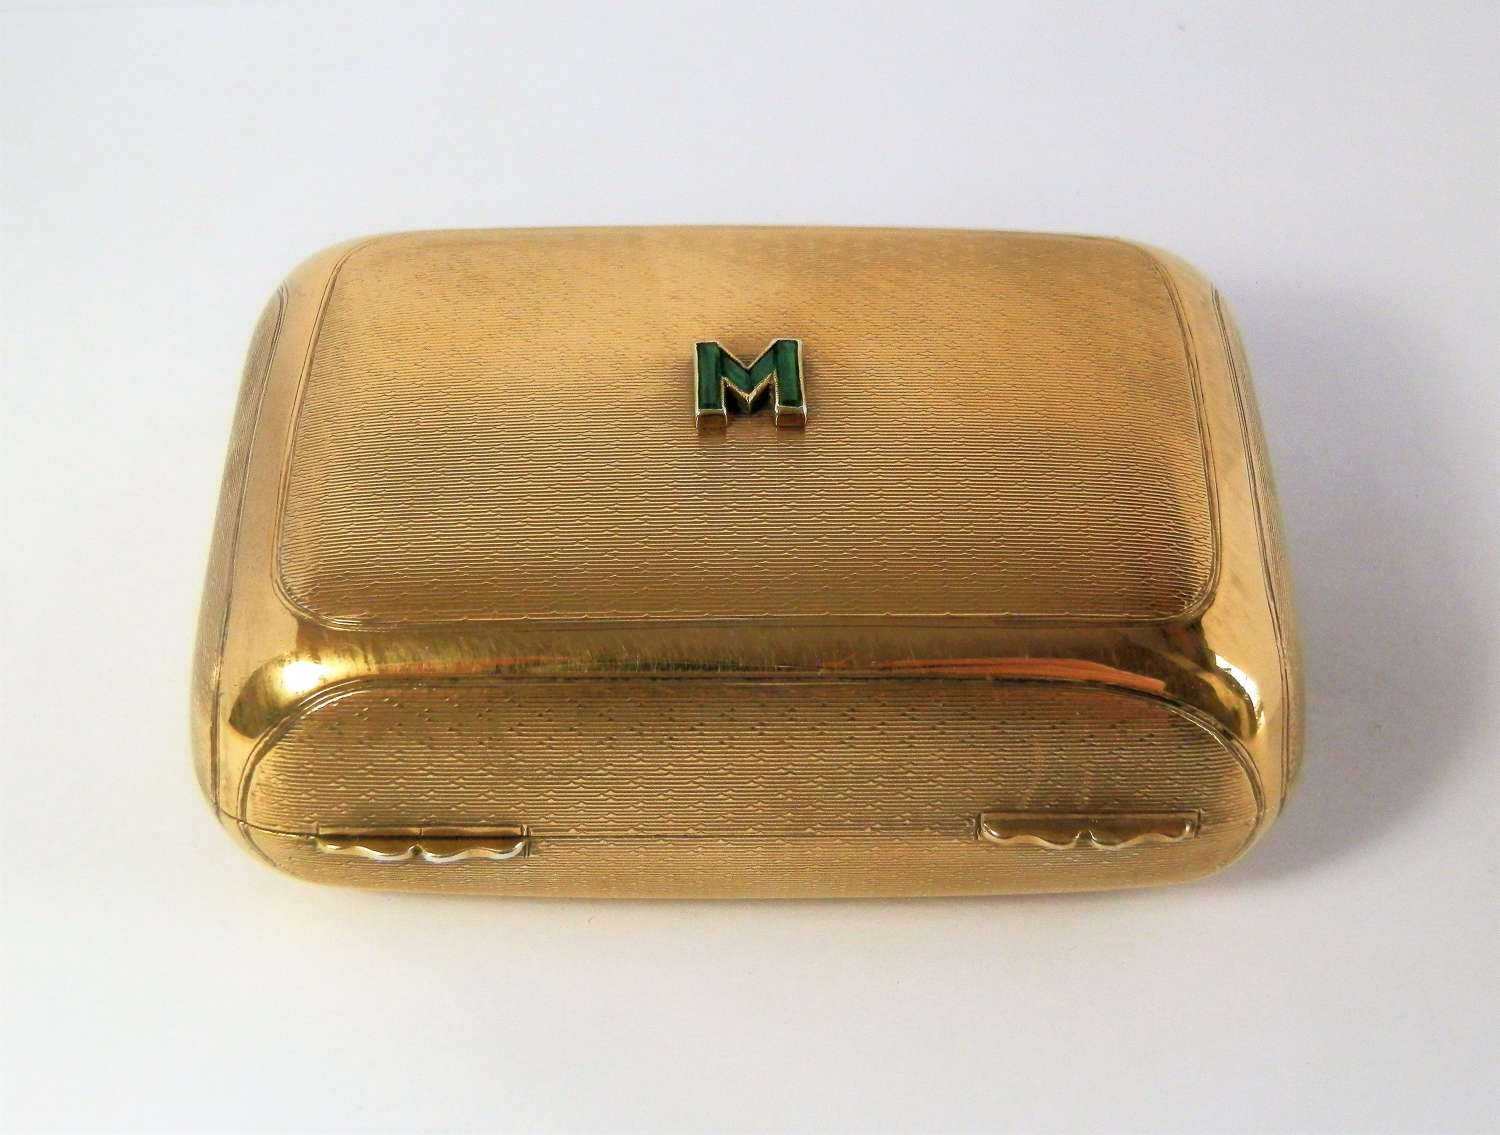 Edwardian emerald set silver gilt soap box, London 1910